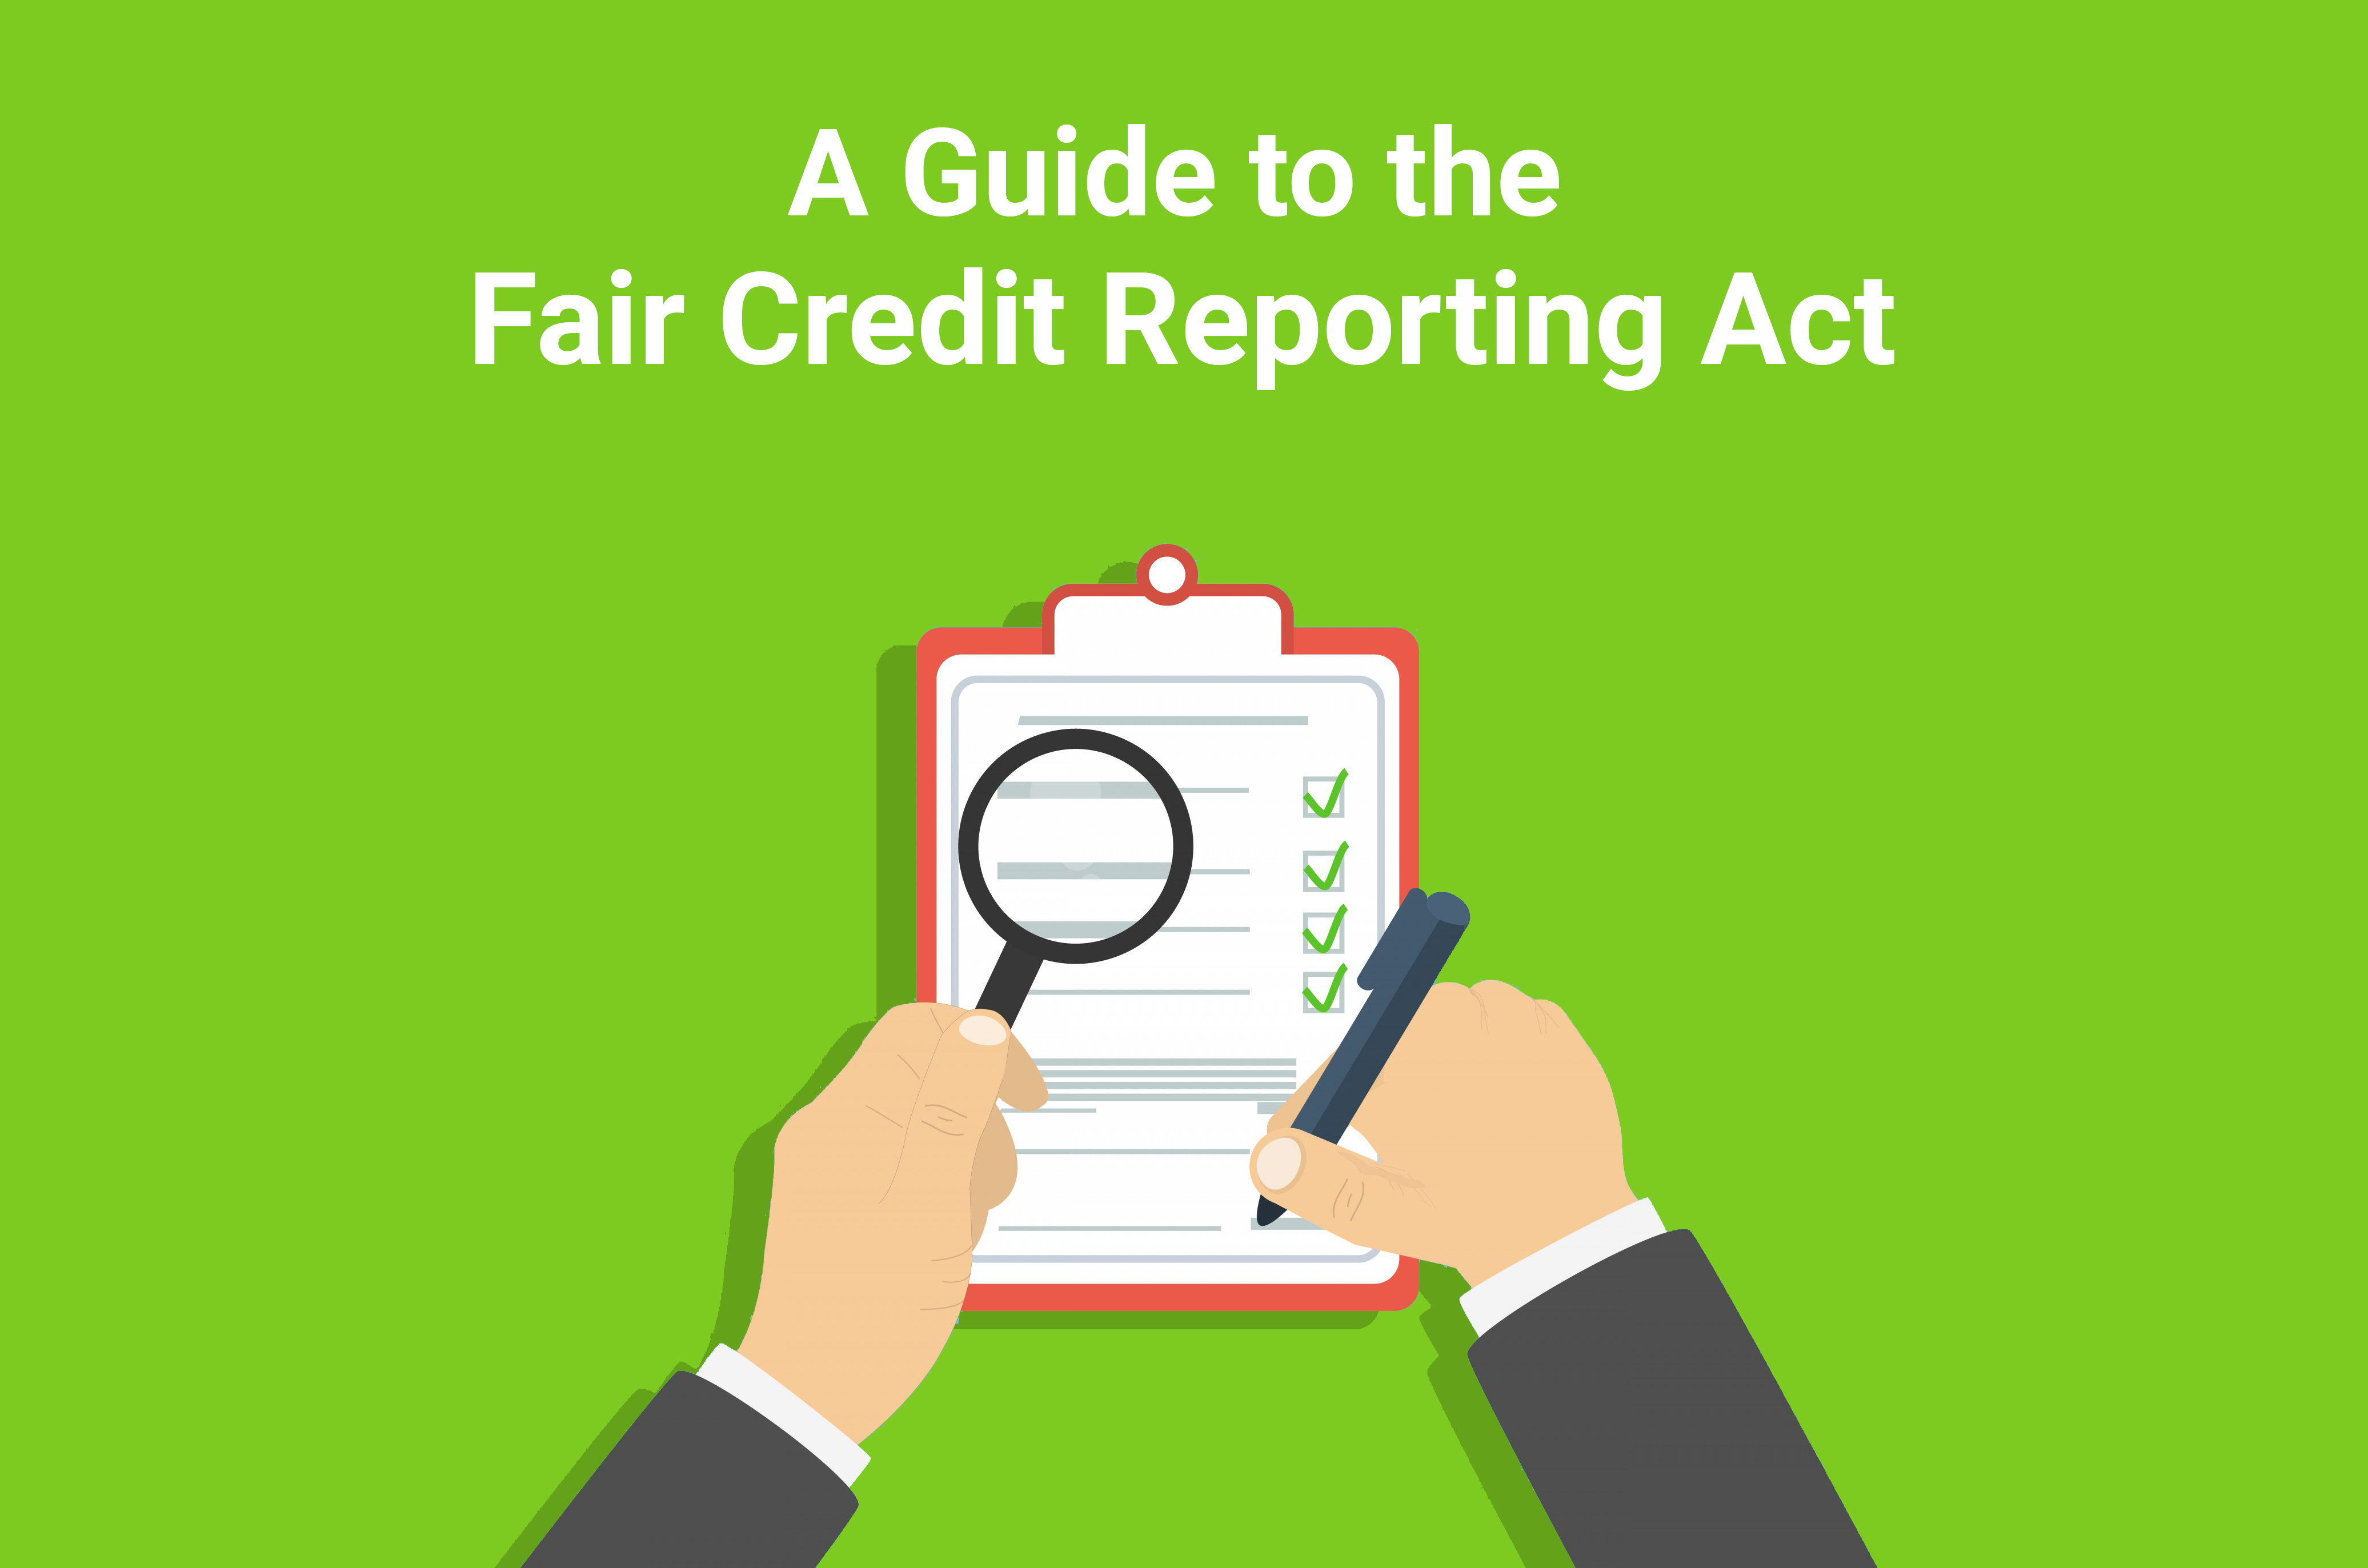 A Guide to the Fair Credit Reporting Act (FCRA)